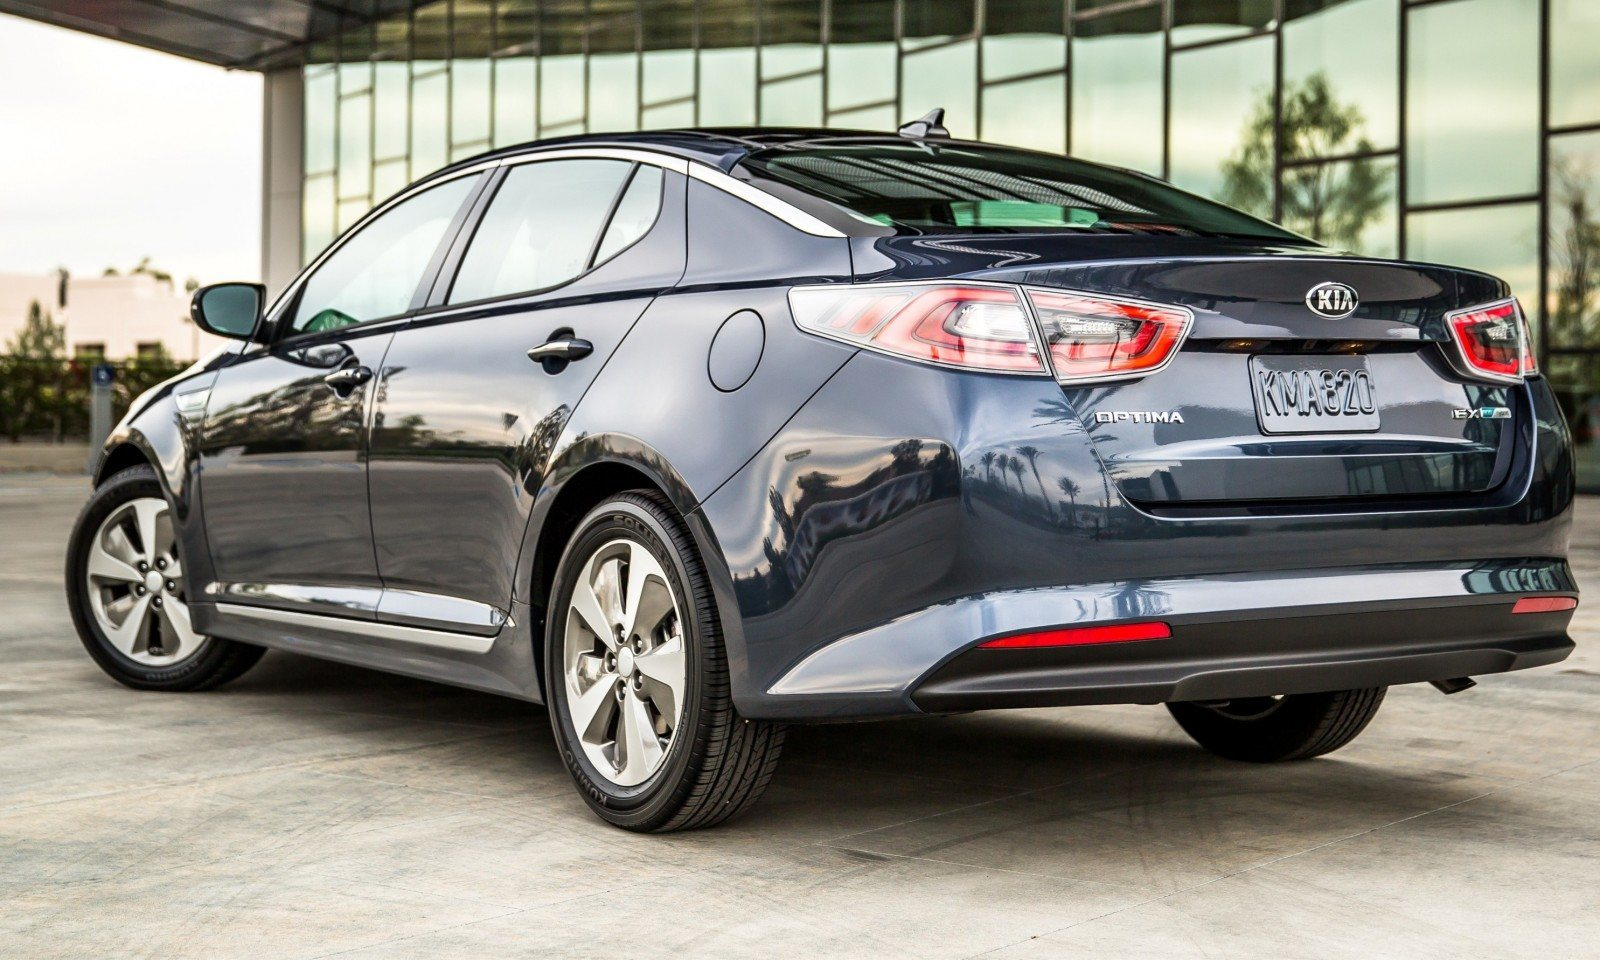 2014 Kia Optima Hybrid Updated With New Grille and LEDs Front and Rear - Specs, Features and Pricing 8